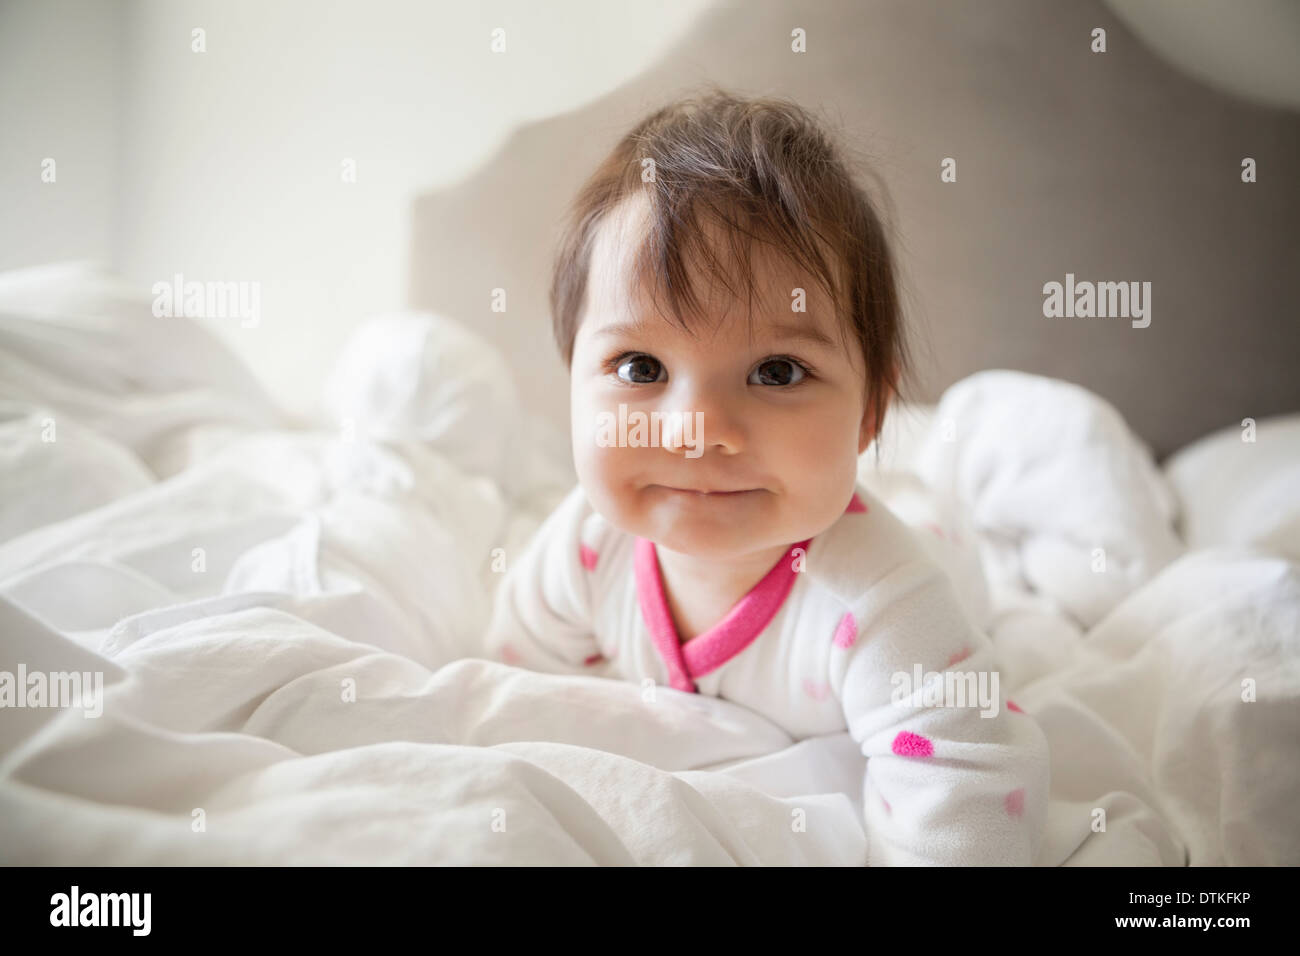 Baby girl crawling in bedsheets - Stock Image